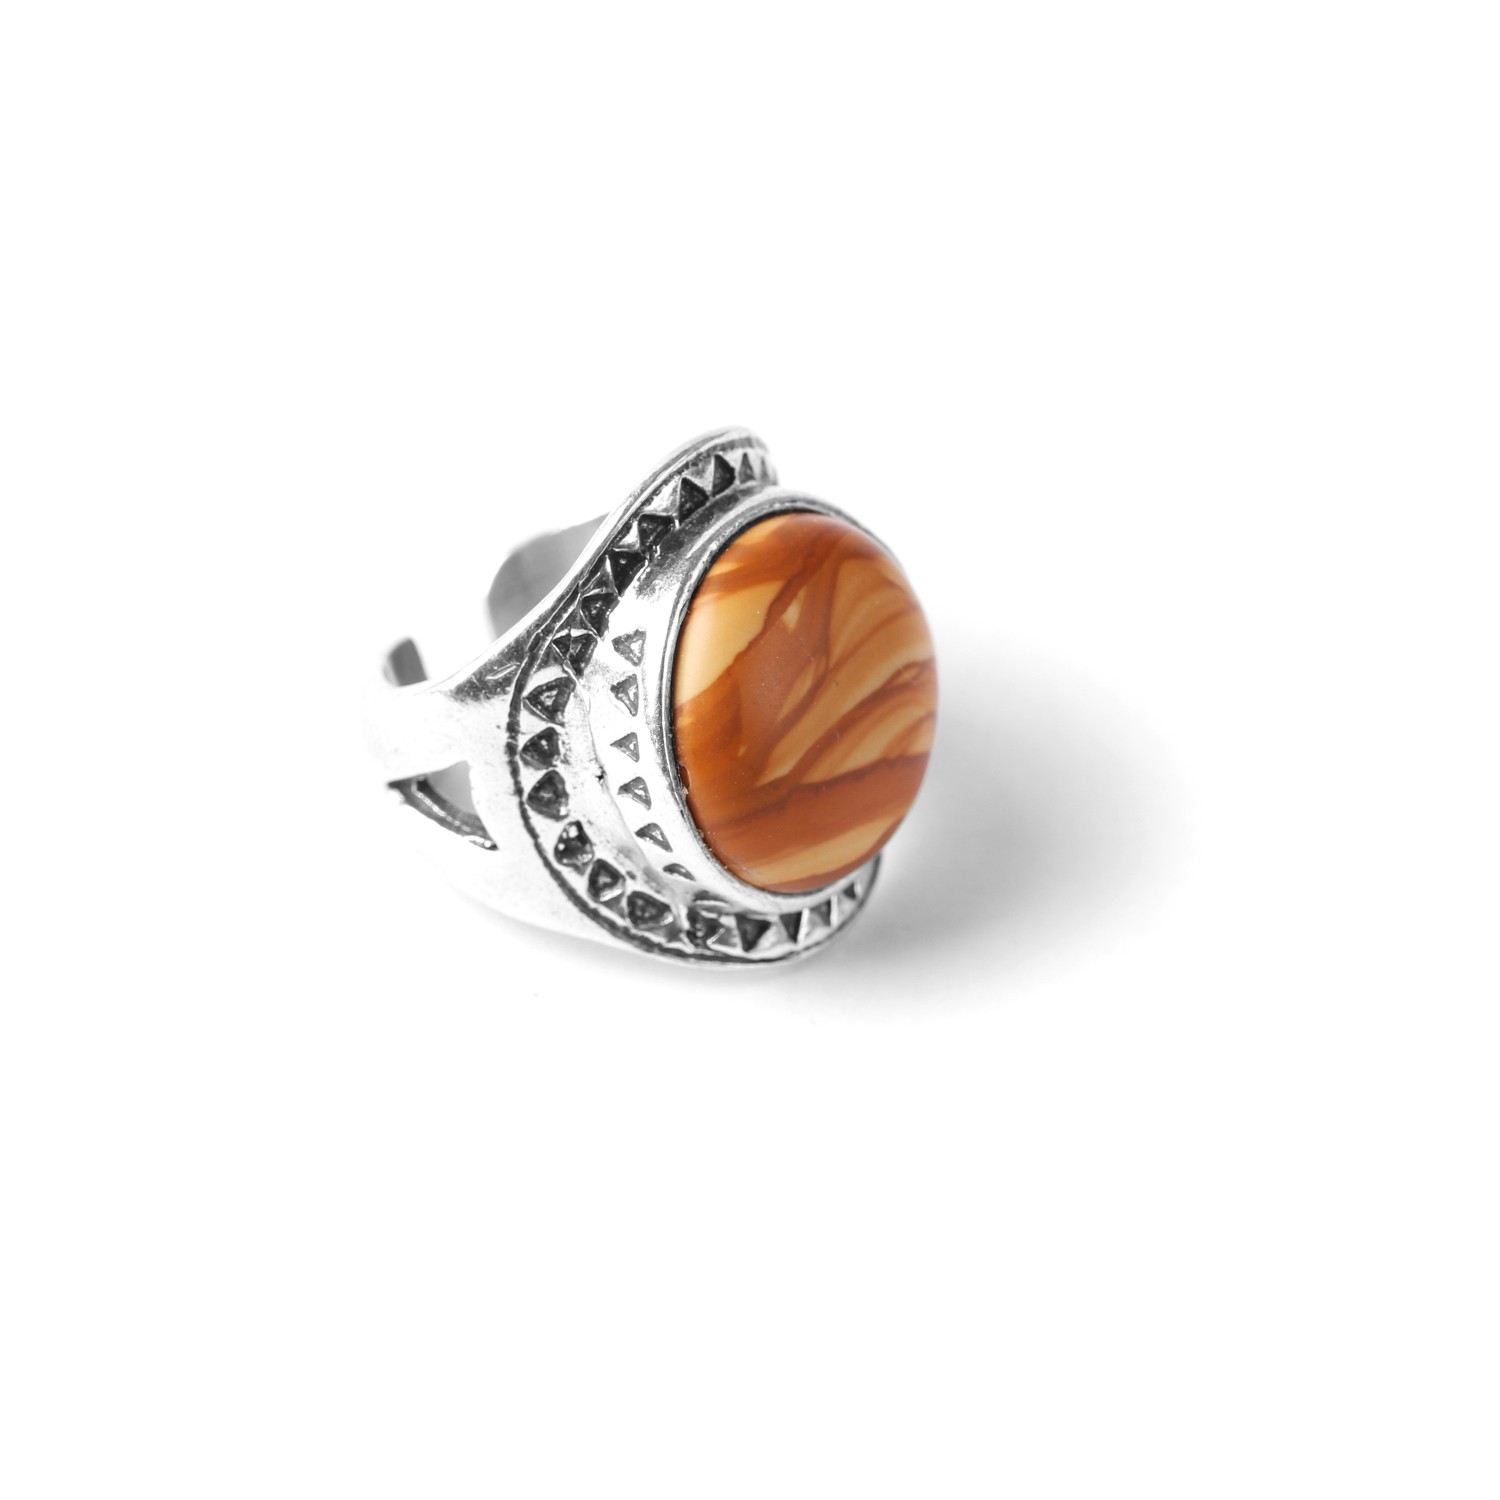 LES CHEVALIERES picture jasper ring